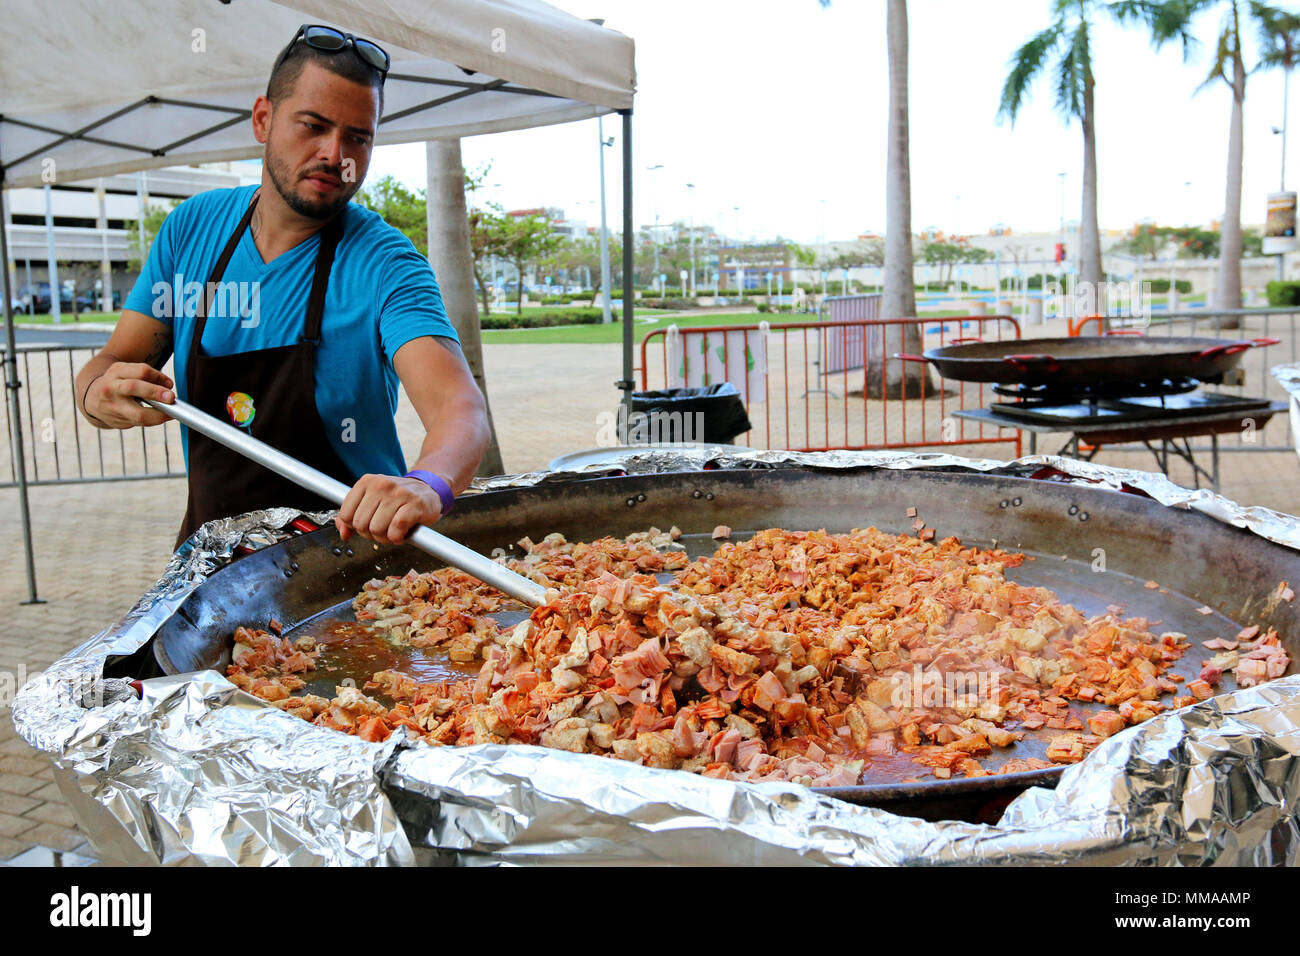 alejandro torres a native of san juan puerto rico and chef volunteering with the non profit organization world central kitchen prepares food for - World Central Kitchen